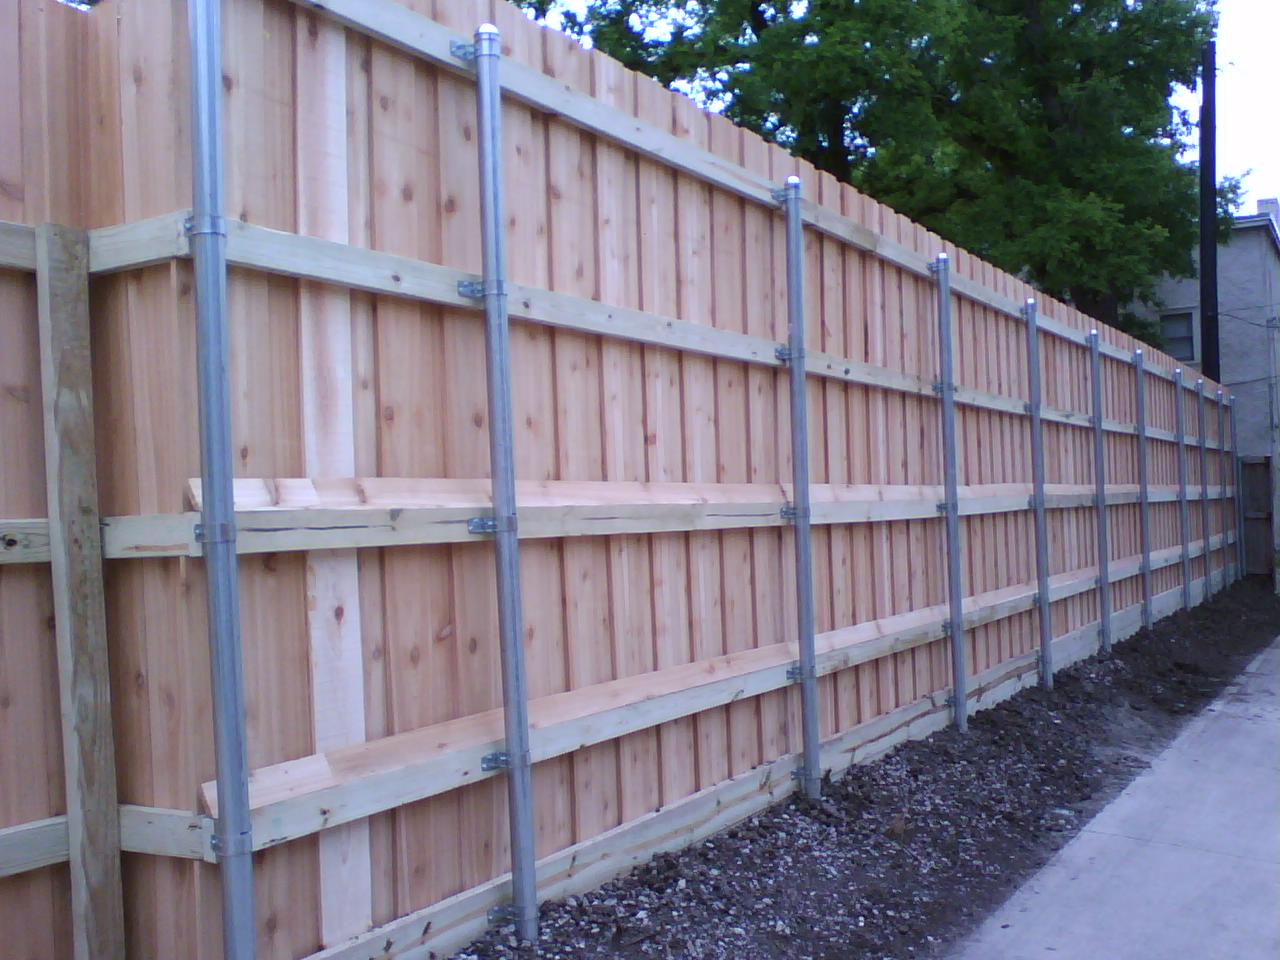 Picture of: Metal Fence Posts for Wood Fence Height